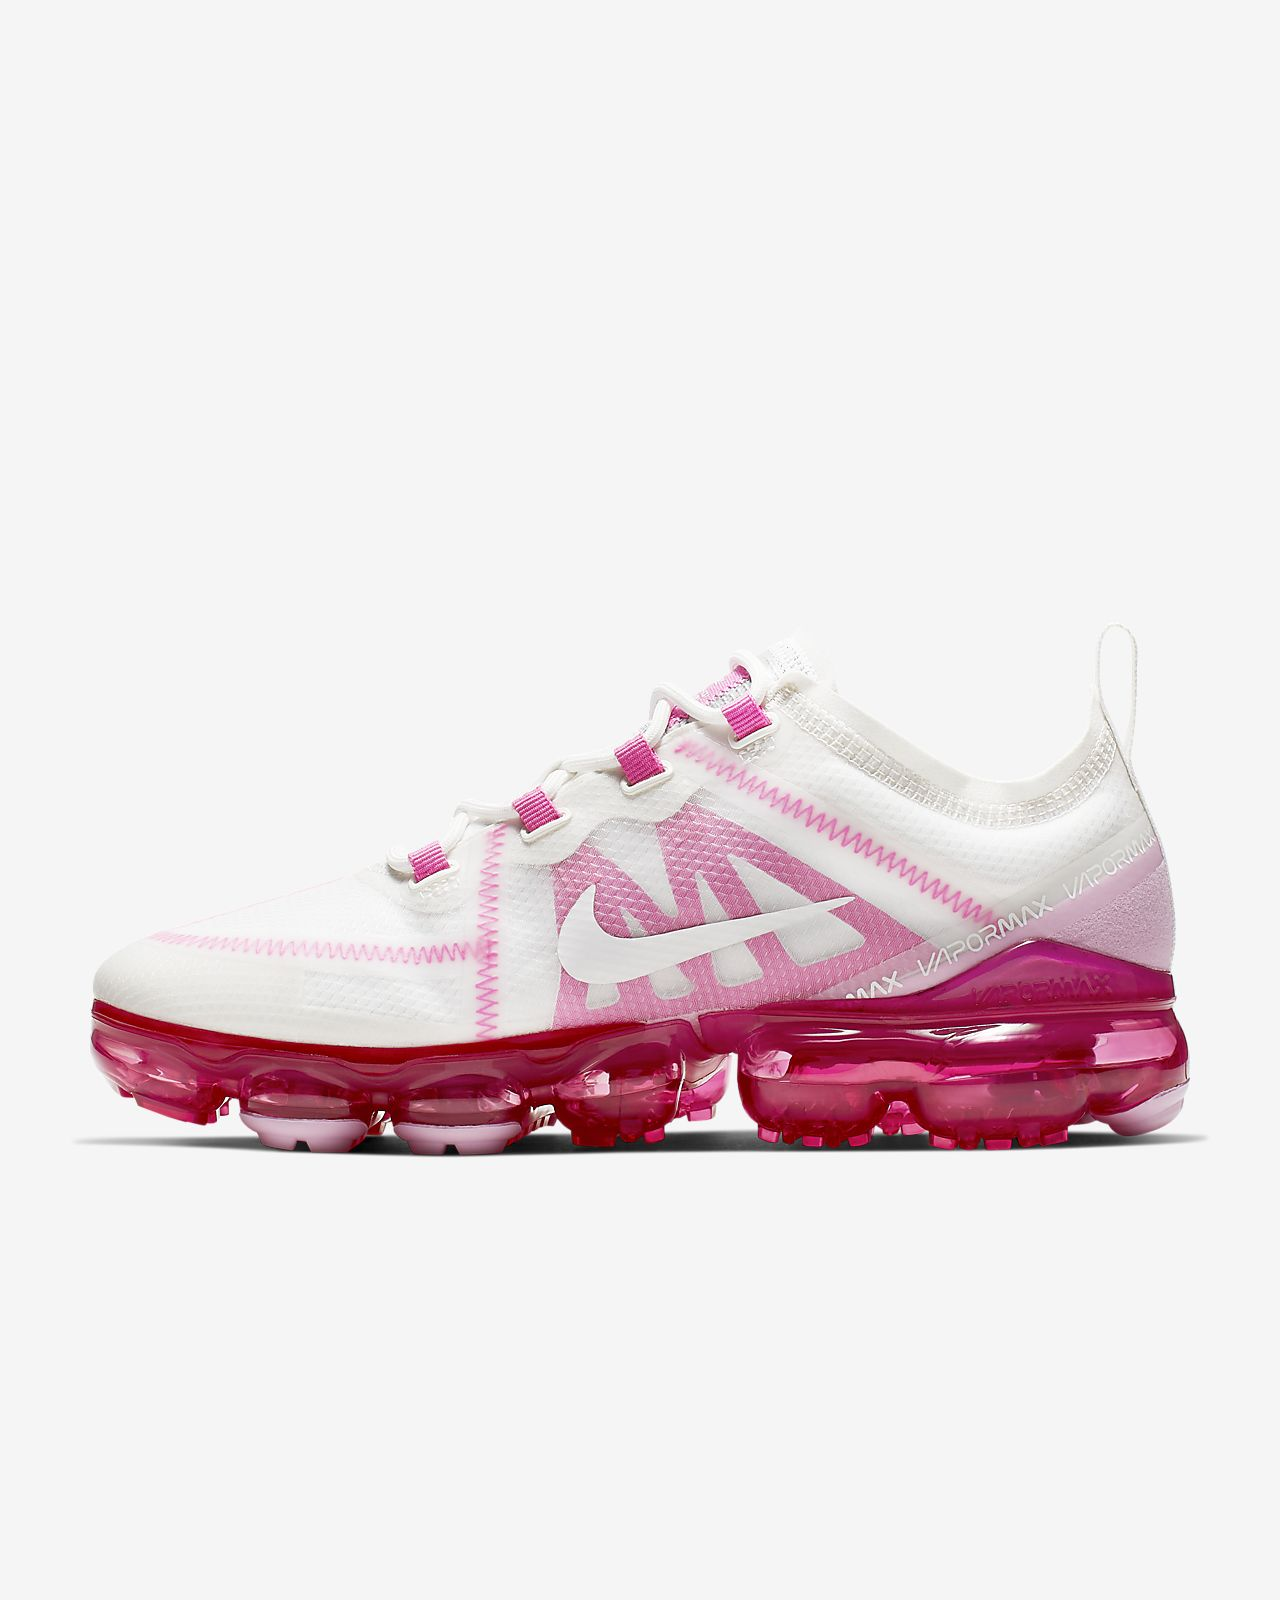 Women's Shoe. Nike Air VaporMax 2019